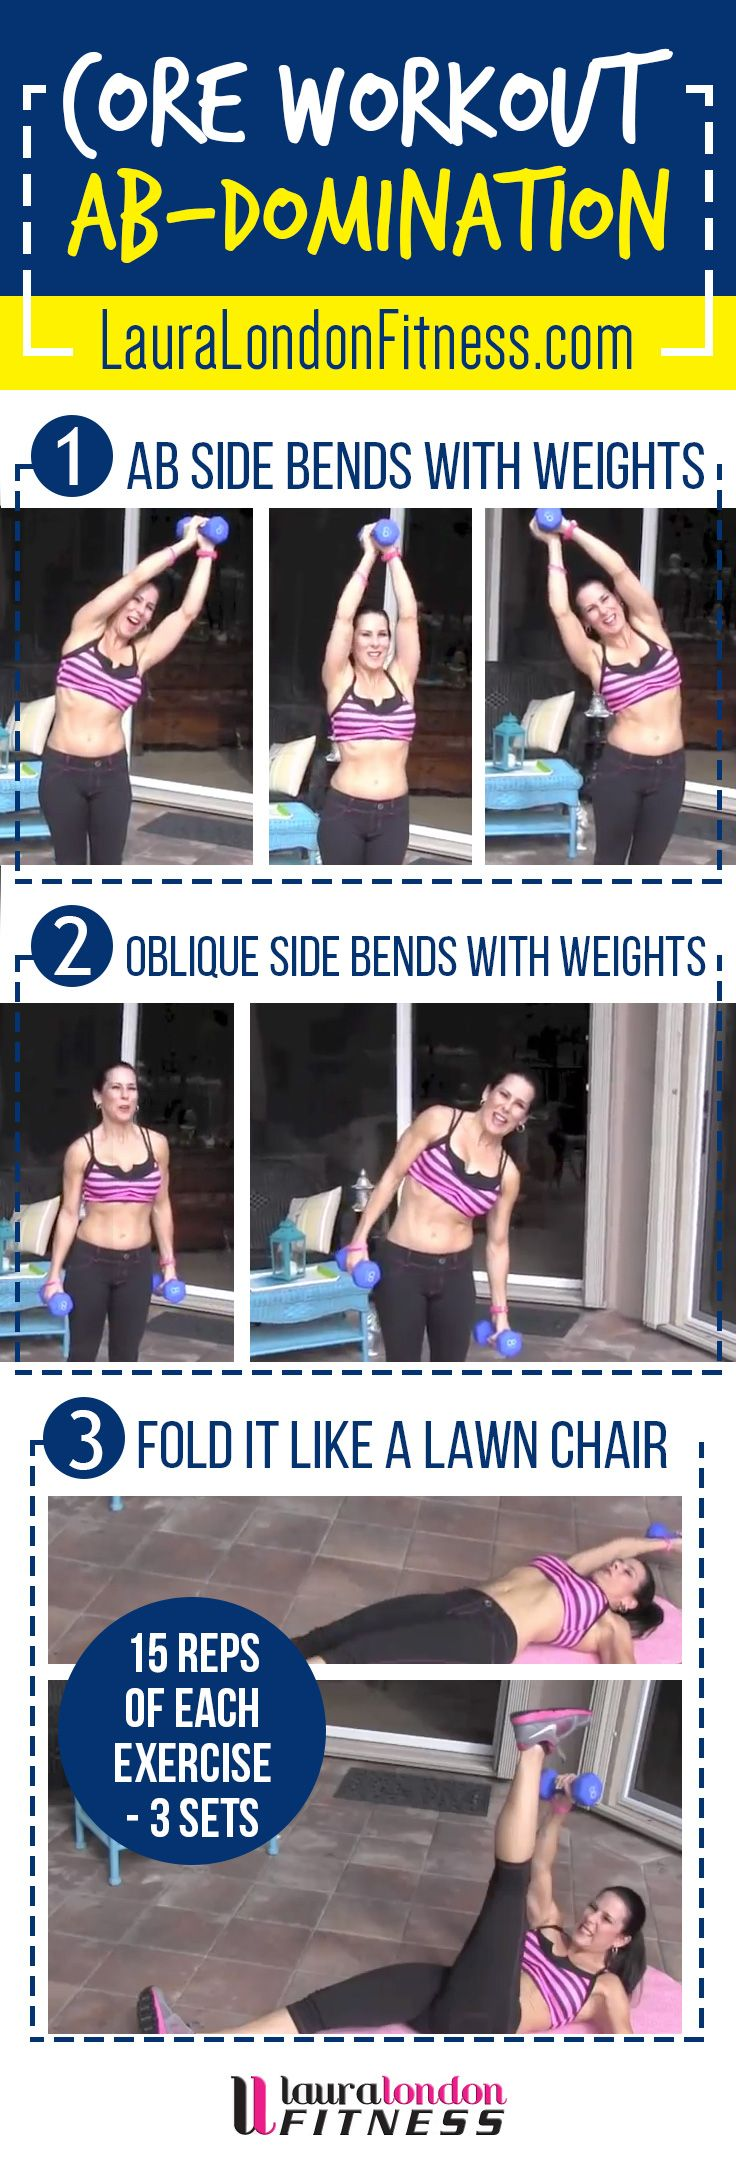 AB DOMINATION with Laura London. 3 of my favorite core building moves to whittle your waist.  #fitness #homeworkouts #lauralondonfitness